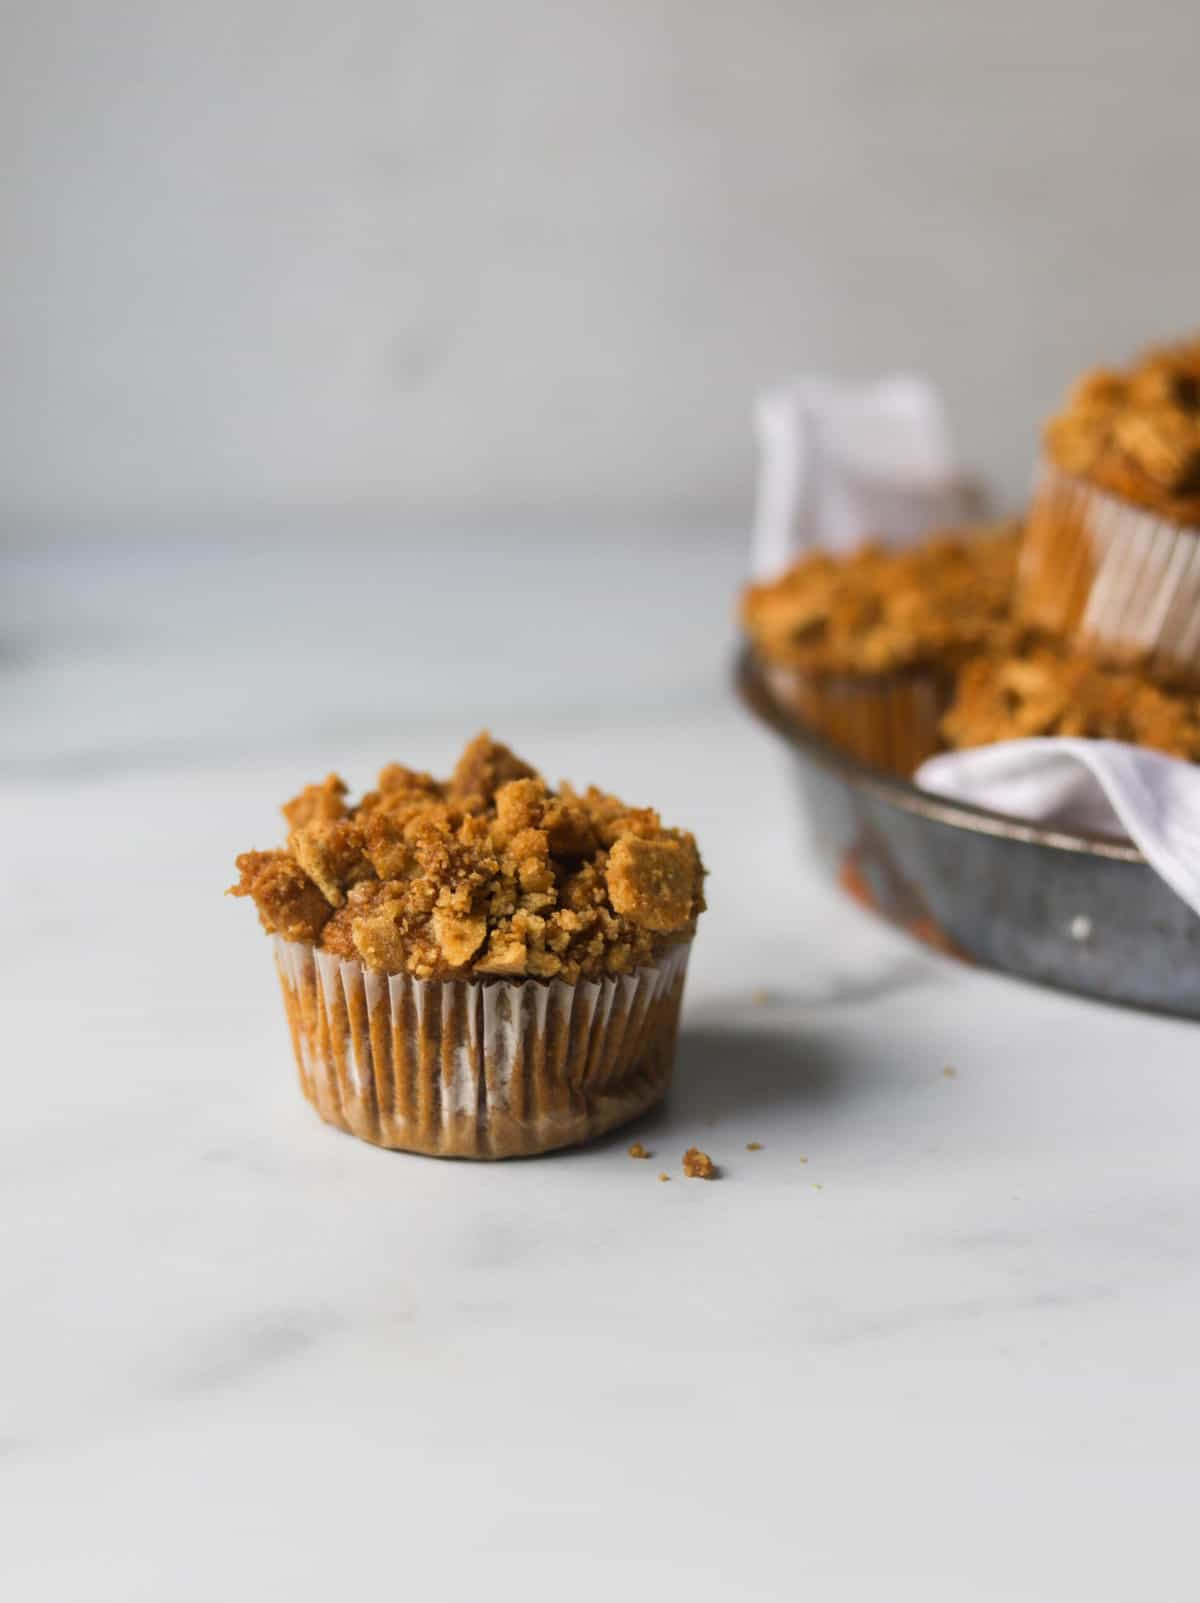 A side shot of a single muffin with a tin of muffins in the backdrop.